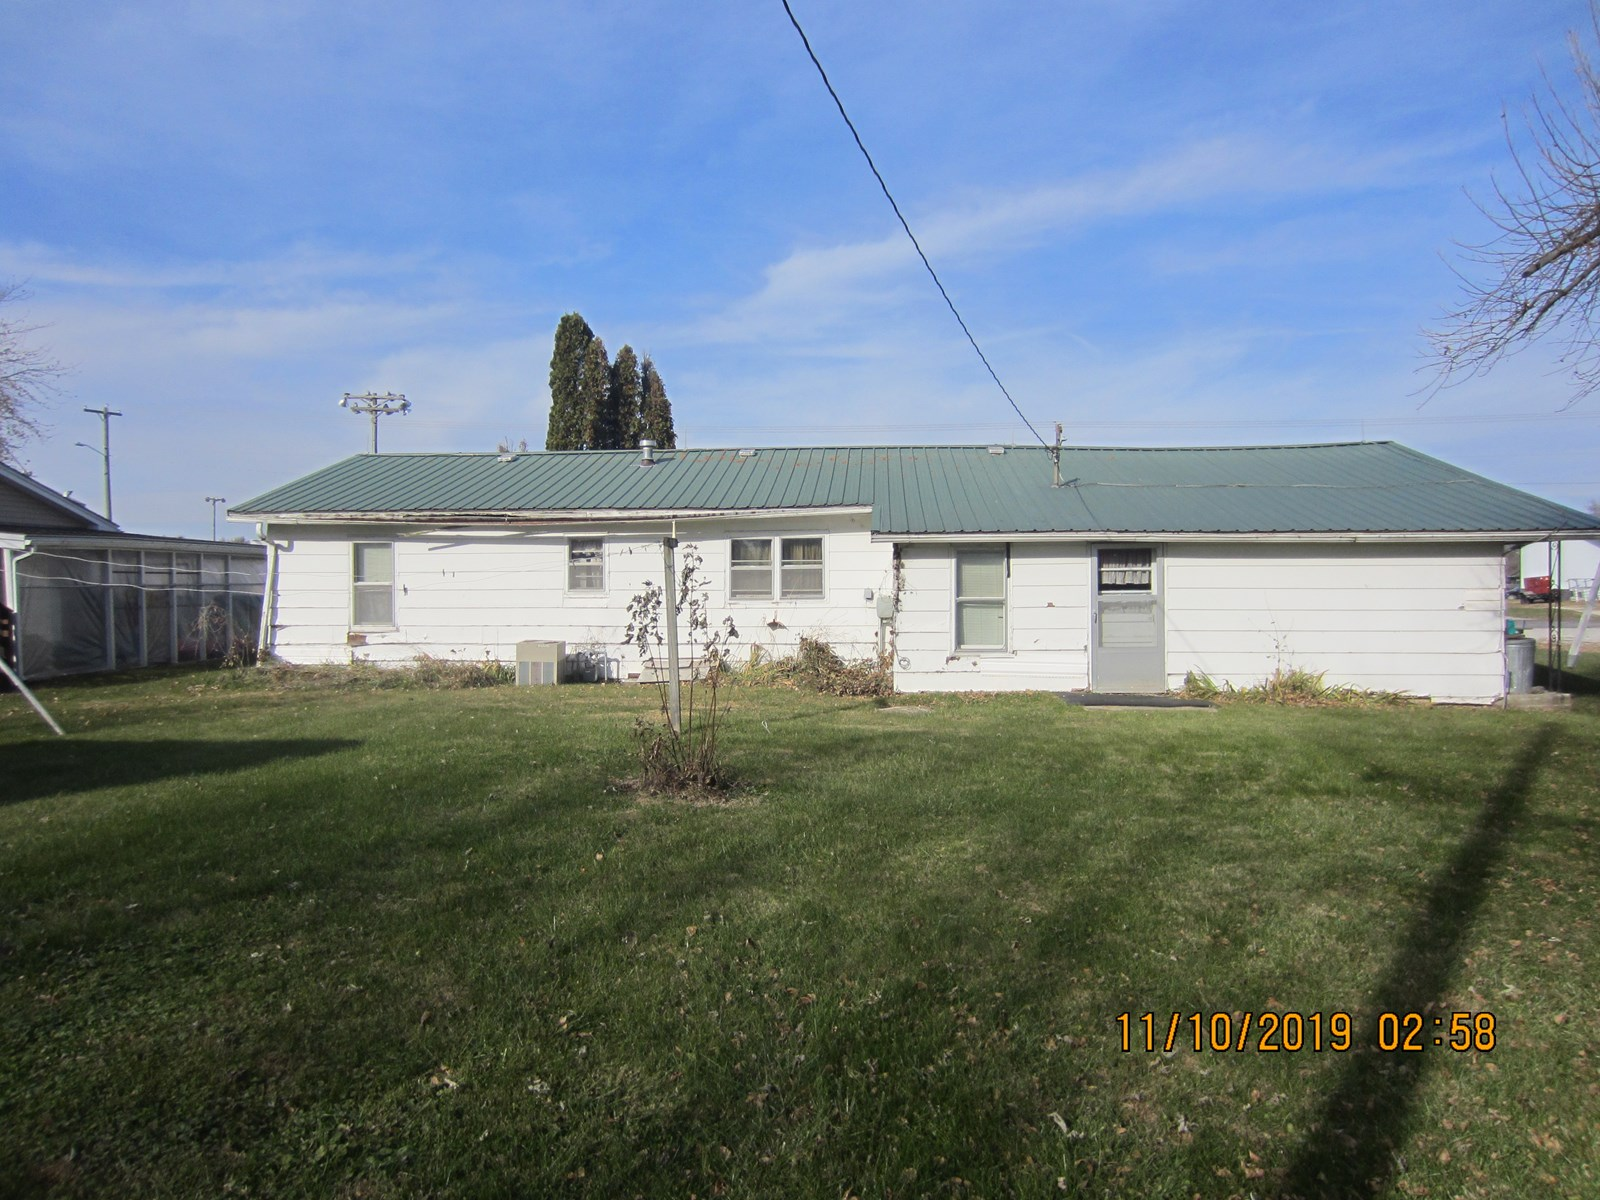 2 Bedroom 1 Bathroom Home in Unionville, MO For Sale